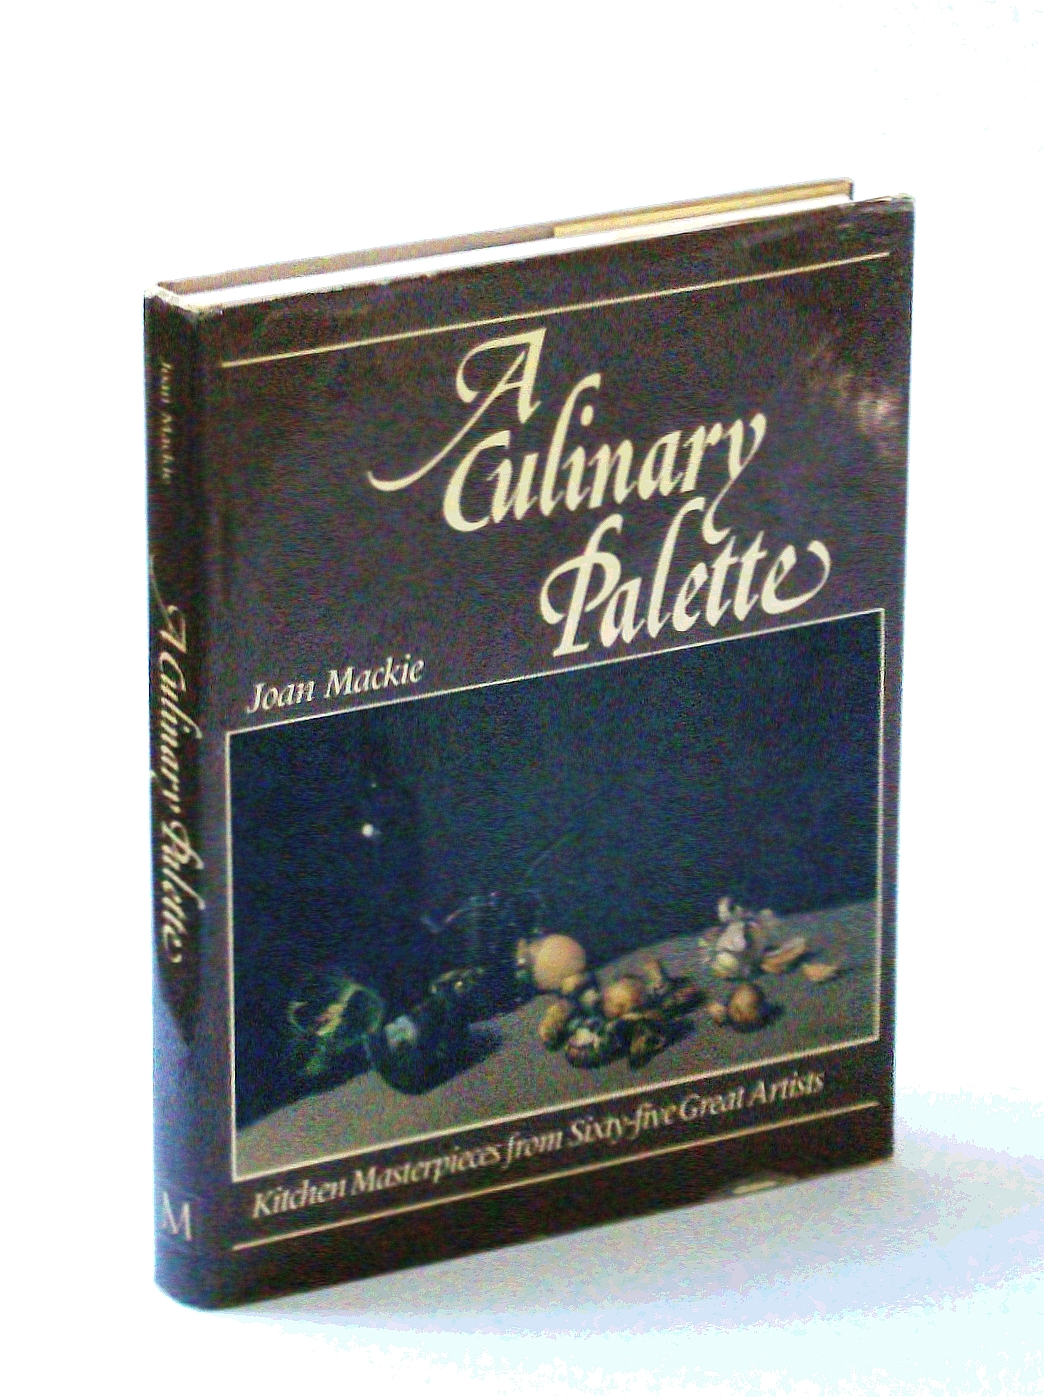 A Culinary Palette: Kitchen Masterpieces from Sixty-five Great Artists